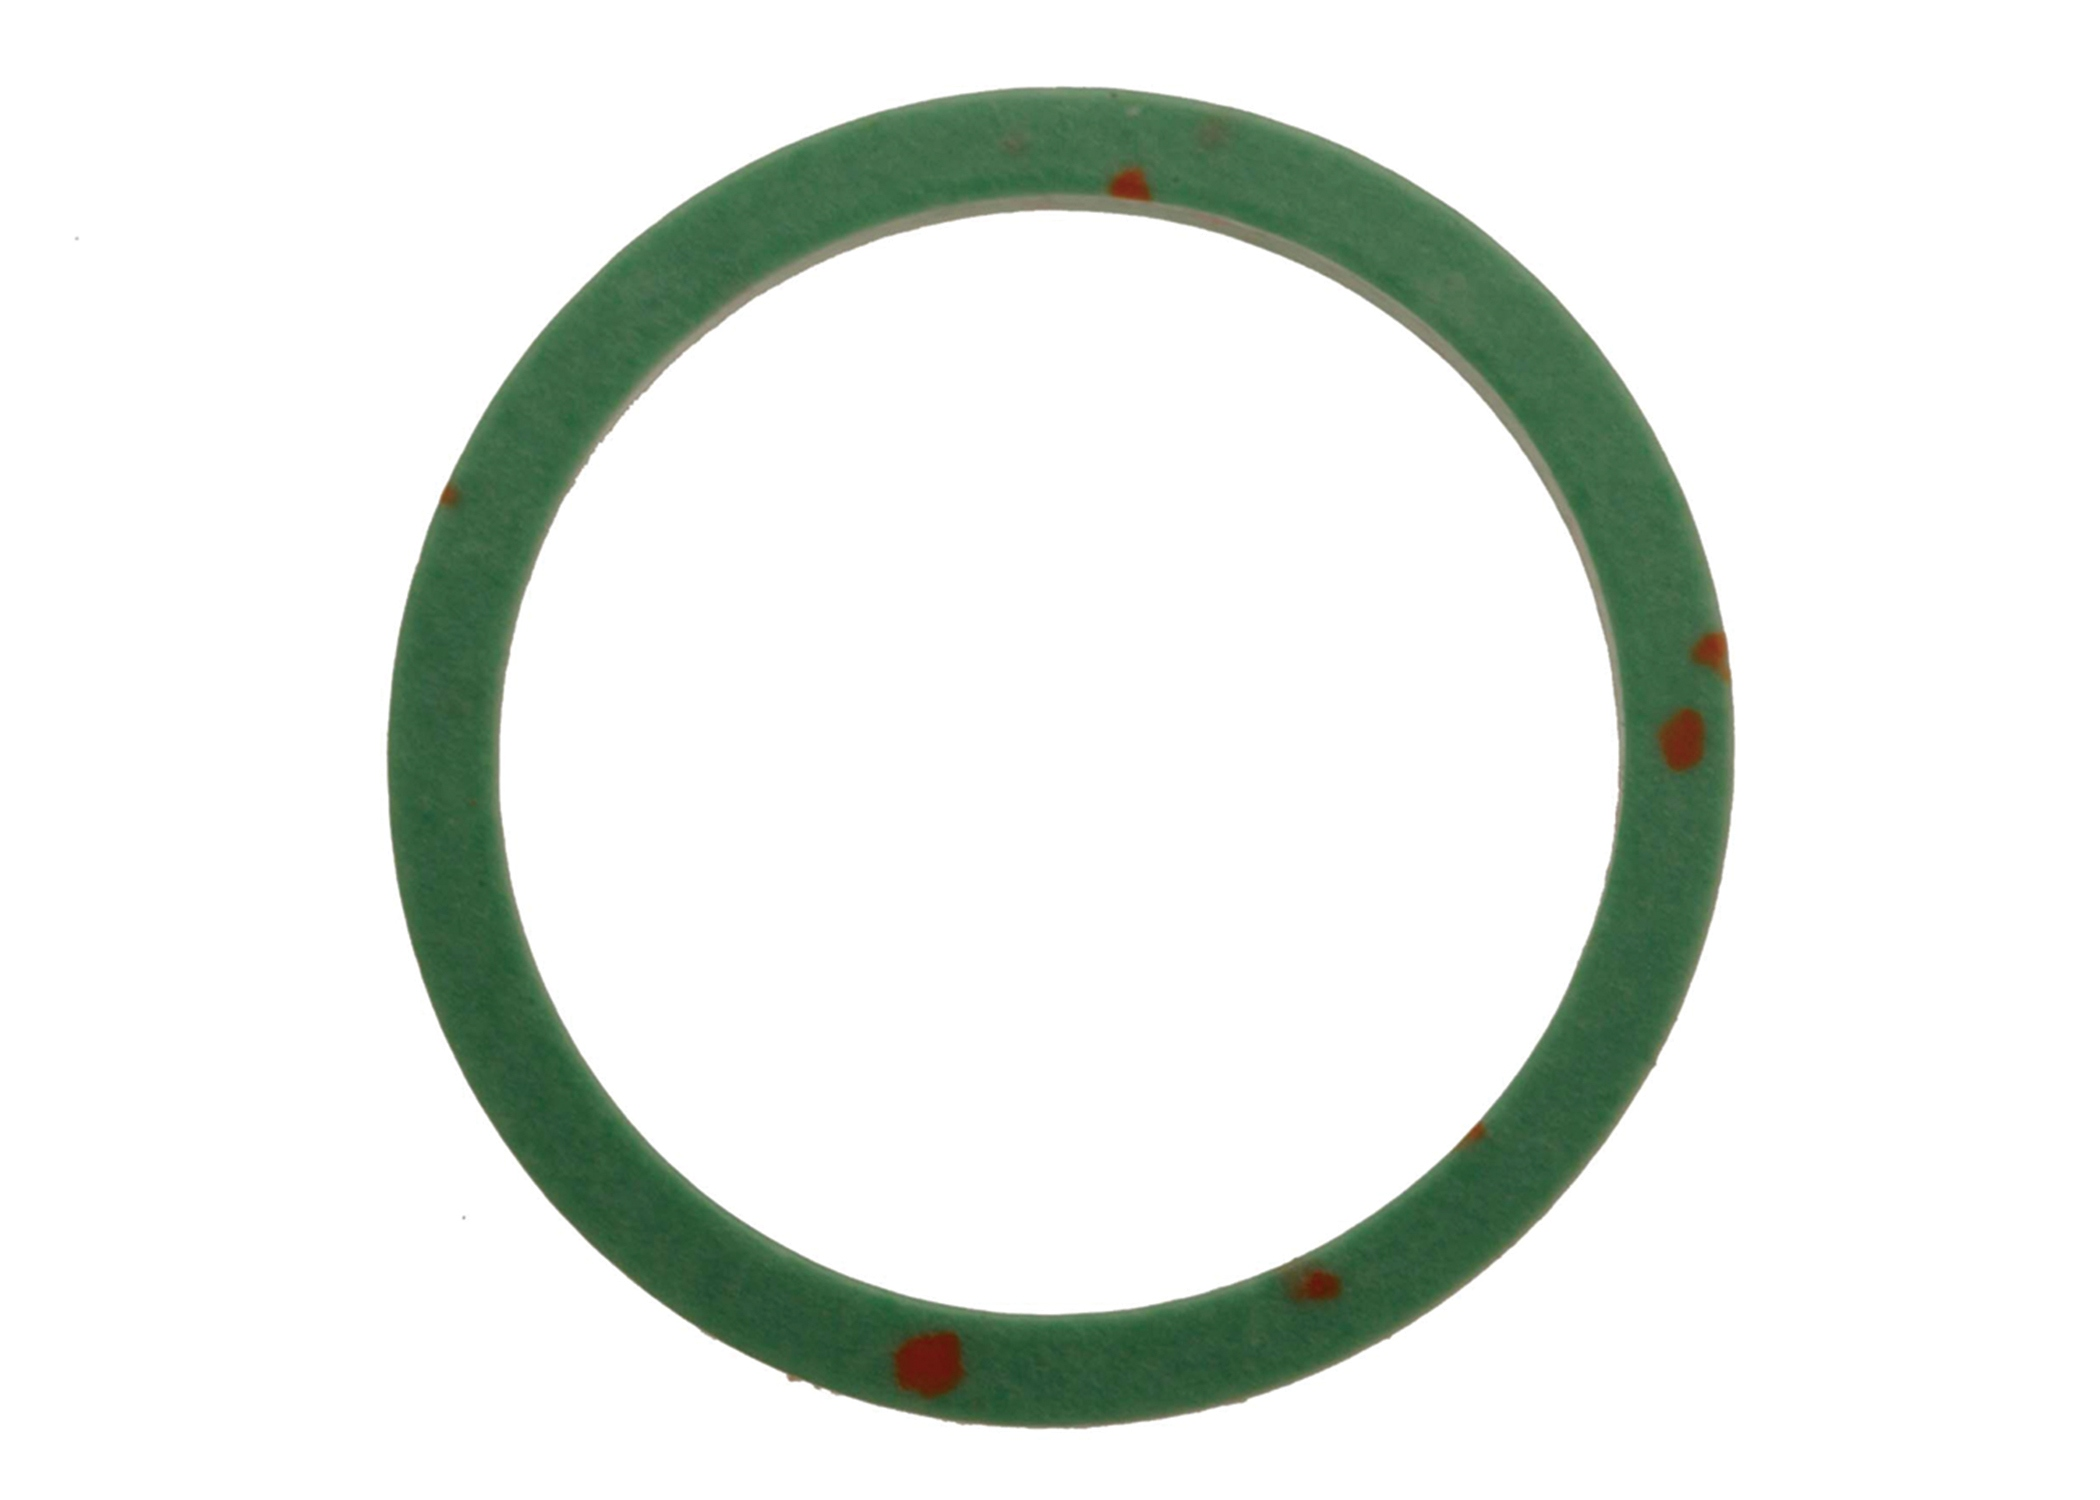 ACDELCO OE SERVICE - Turbine Shaft Fluid Seal Ring - DCB 8643058